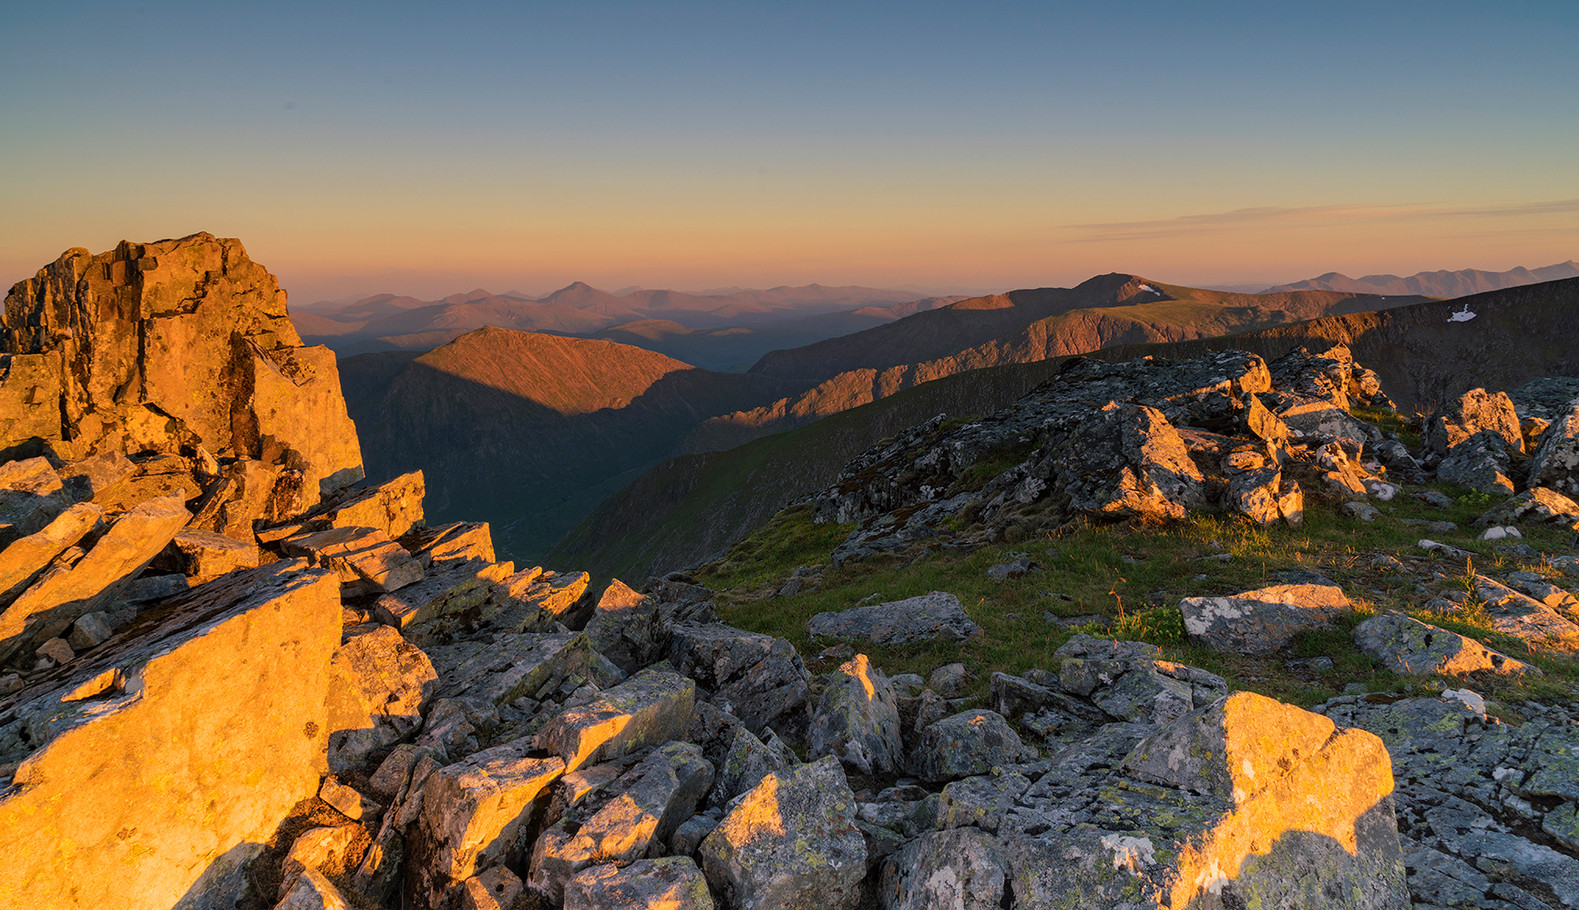 Sunset over Stob Ghabar